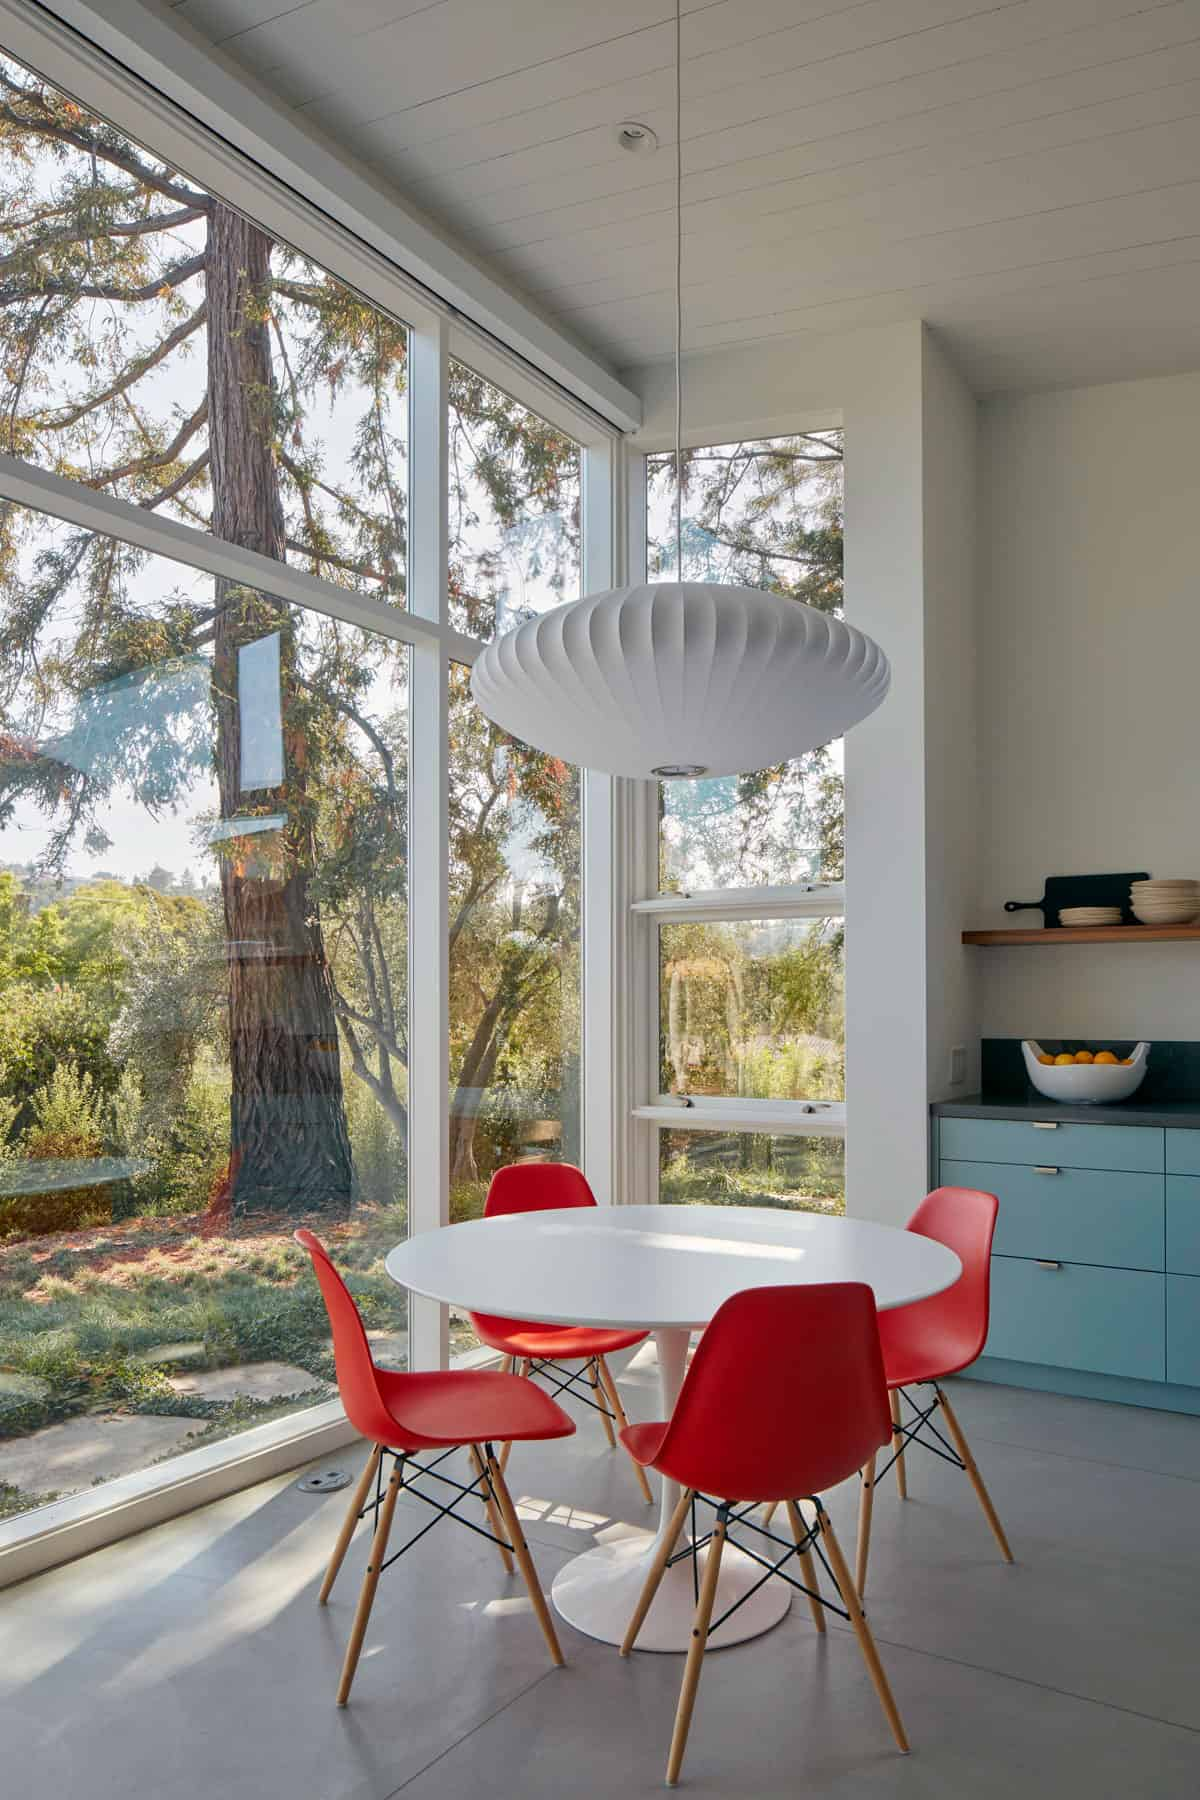 The kitchen nook overlooks the existing mature trees